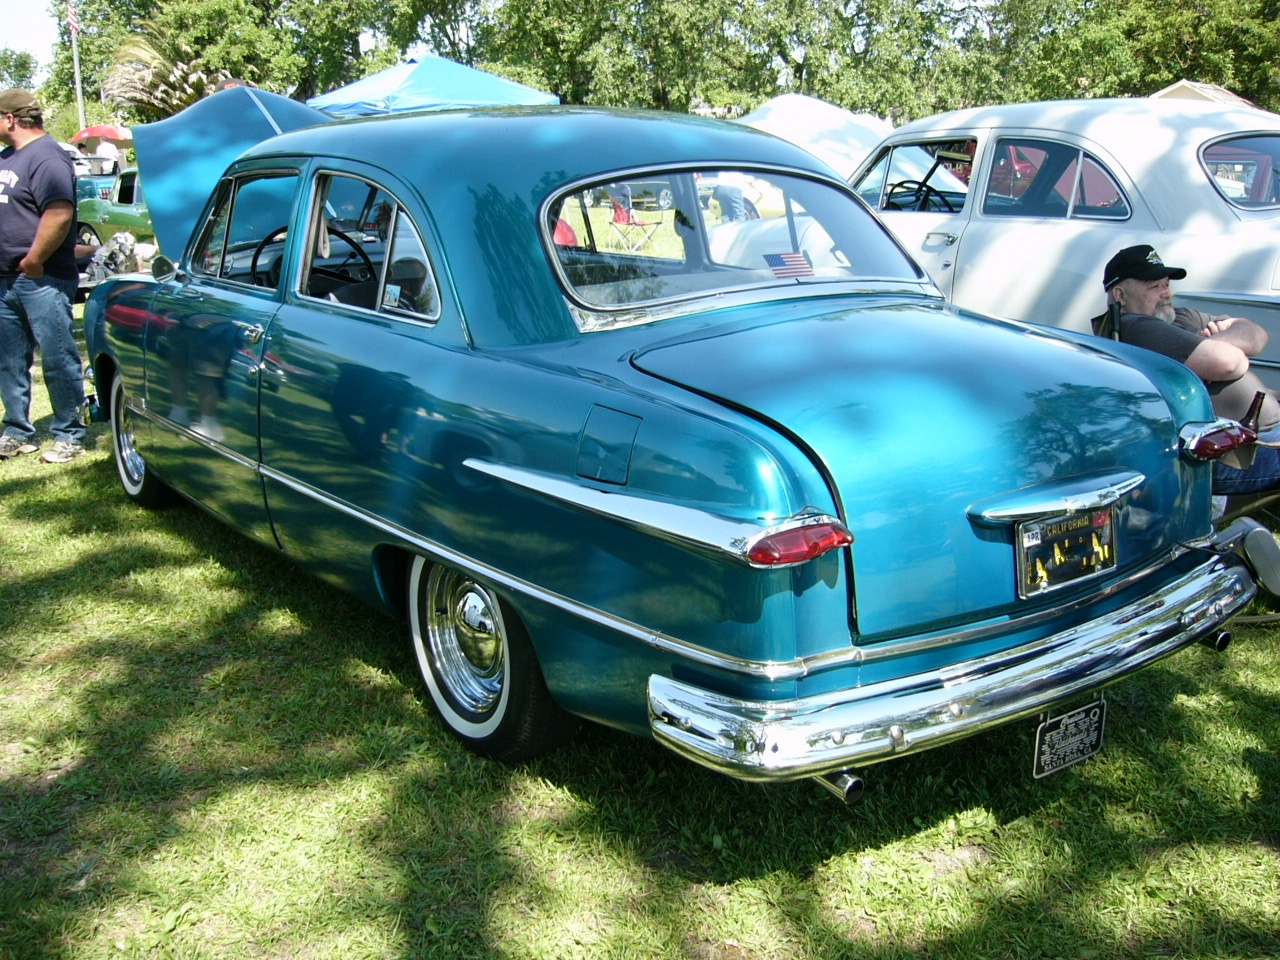 1951 Ford Custom 2 dr sedan by RoadTripDog